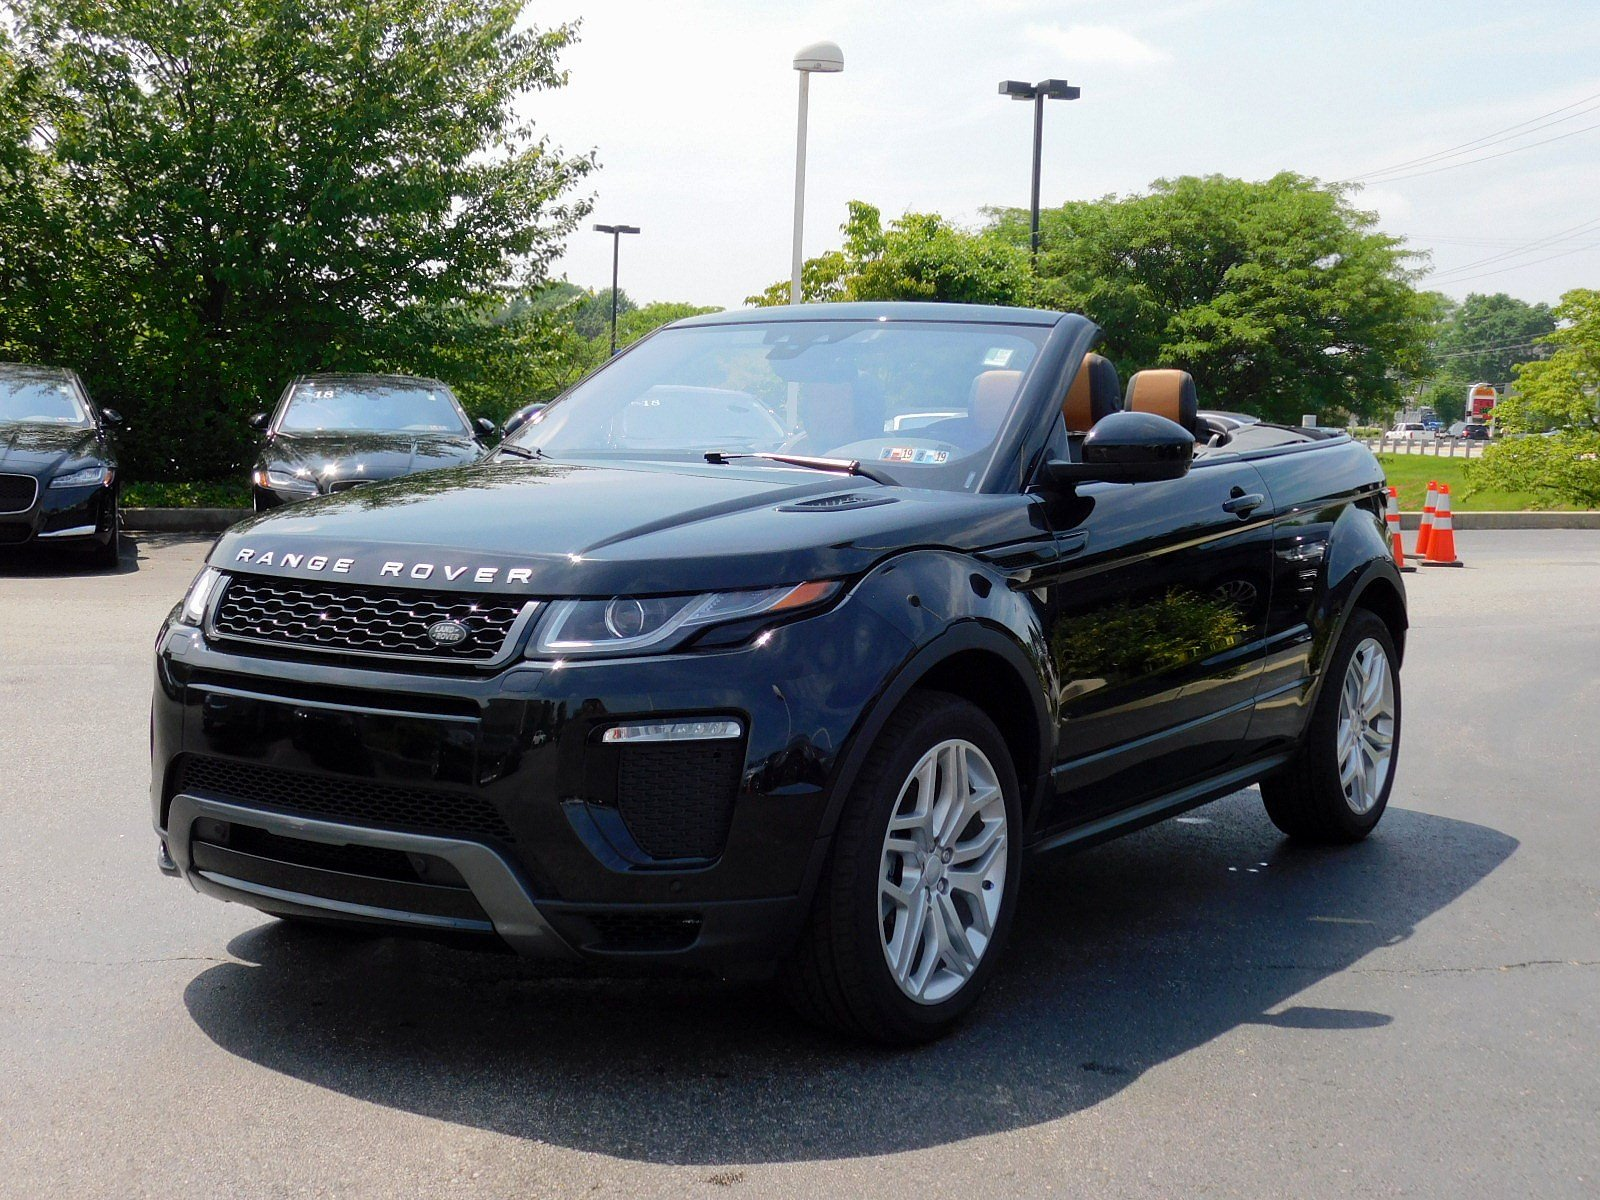 land en research takeover convertible evoque picture gallery cheap asp lease leasebusters hse canada rover s pioneers range to landrover see click bigger